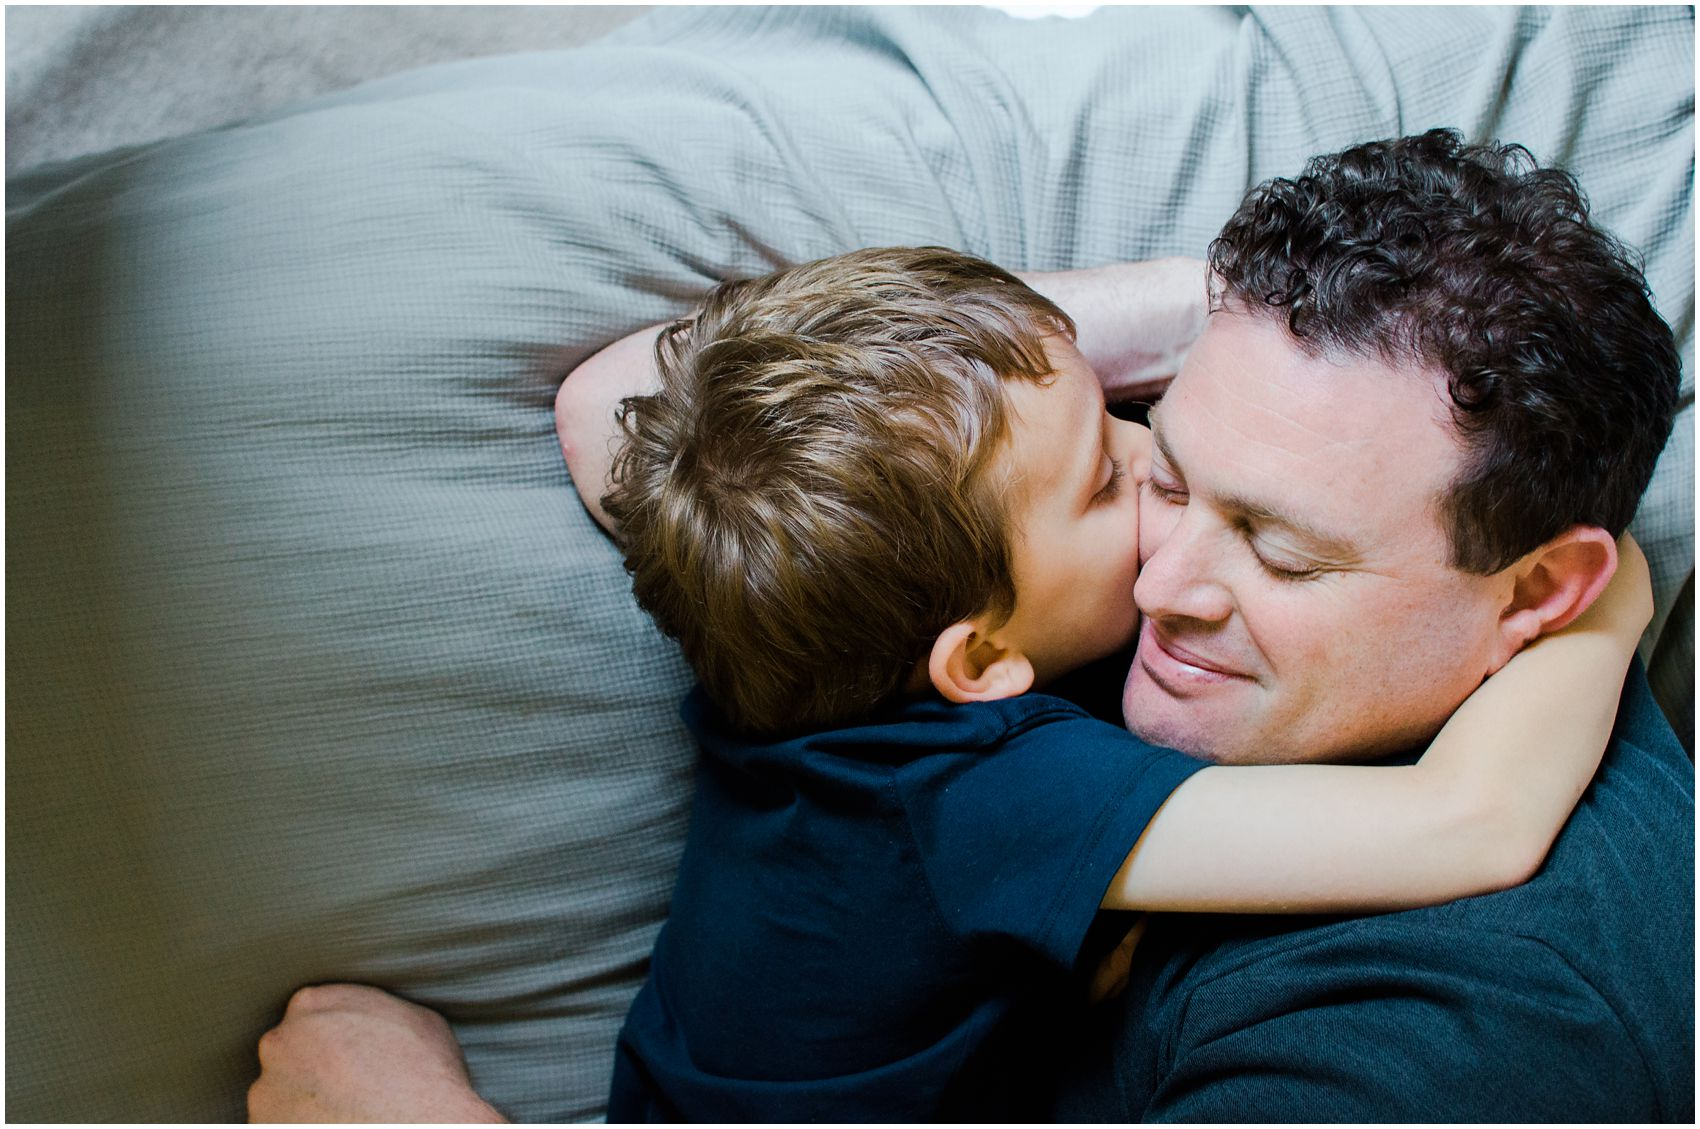 son snuggling with his dad and giving a hug during a fame family session at Hoboken NJ home